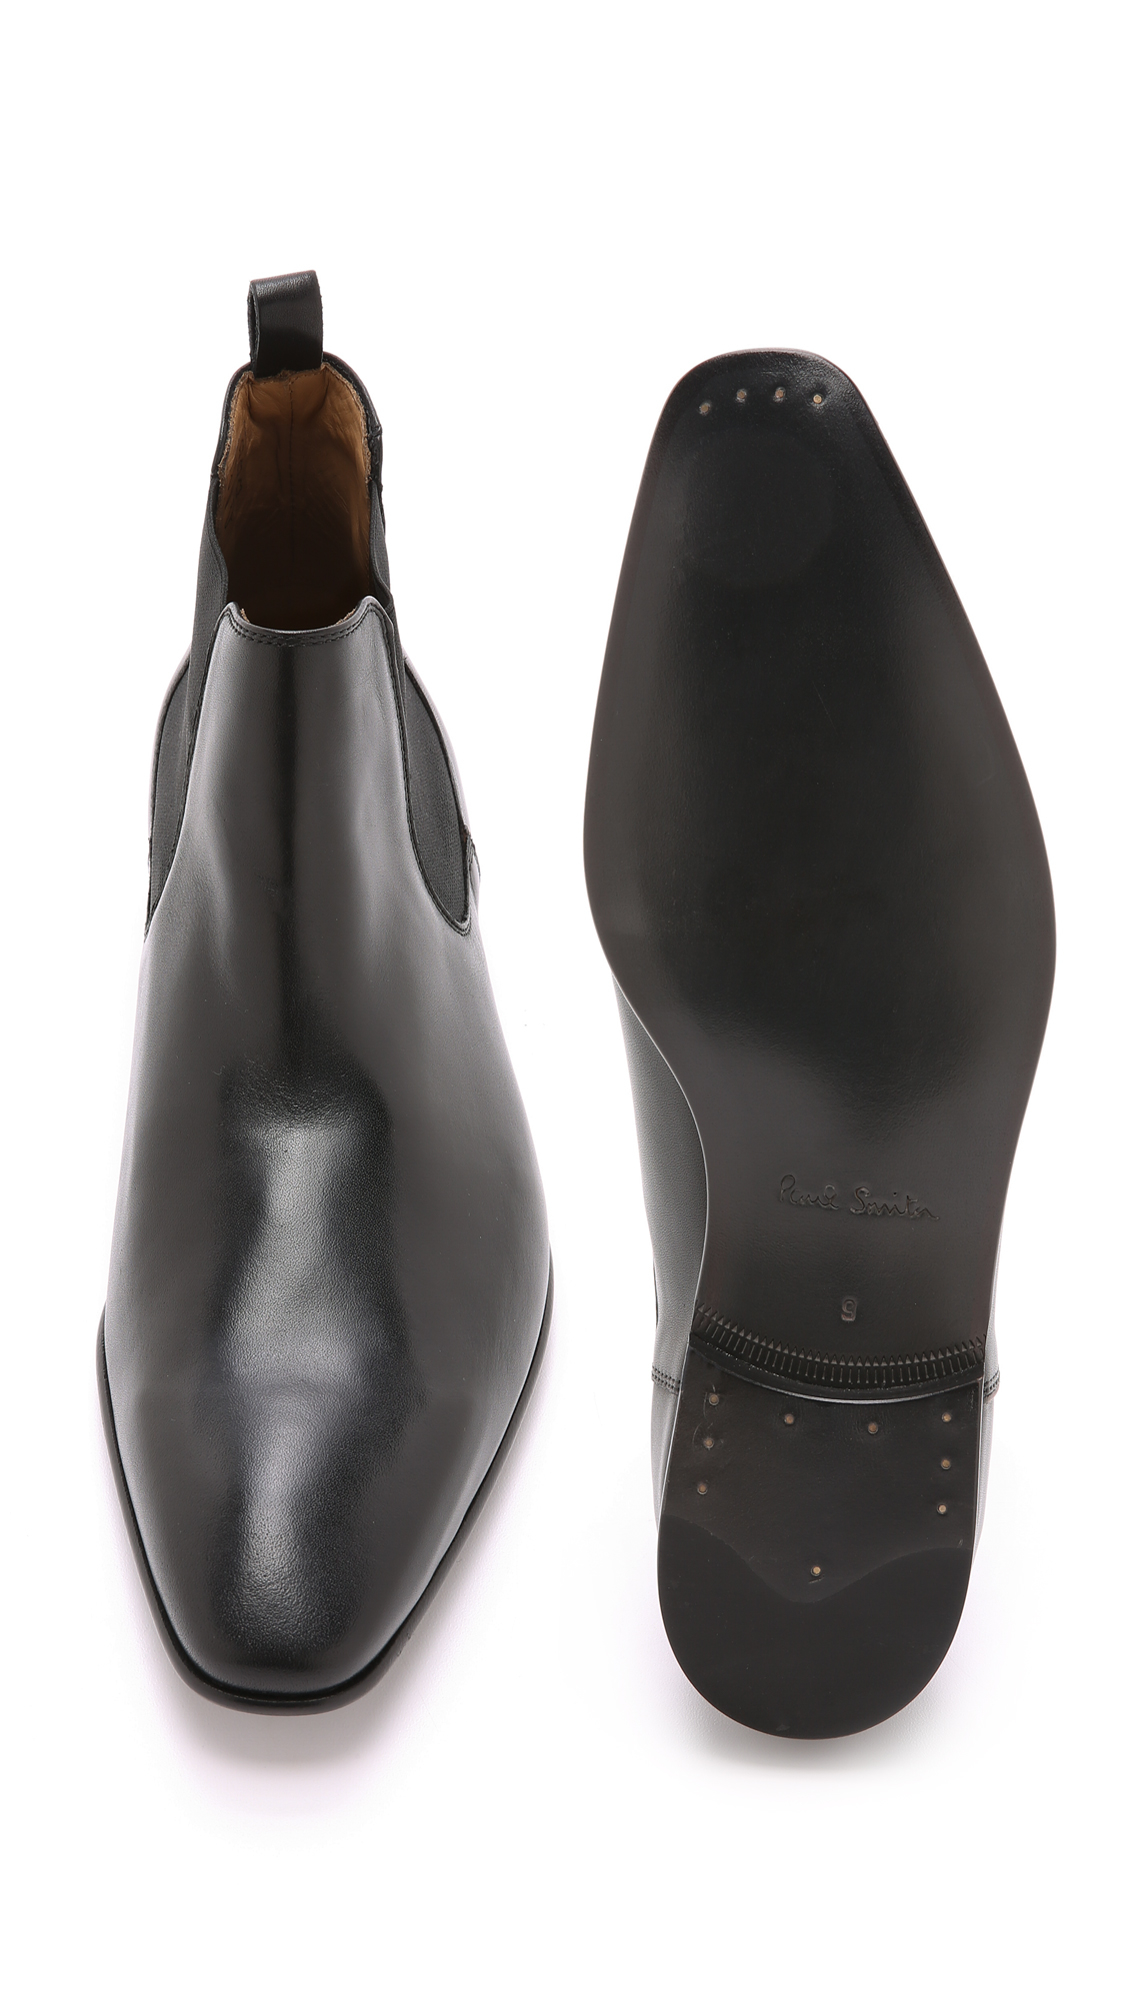 36f6b9de8b7 Gallery. Previously sold at  East Dane · Men s Chelsea Boots ...